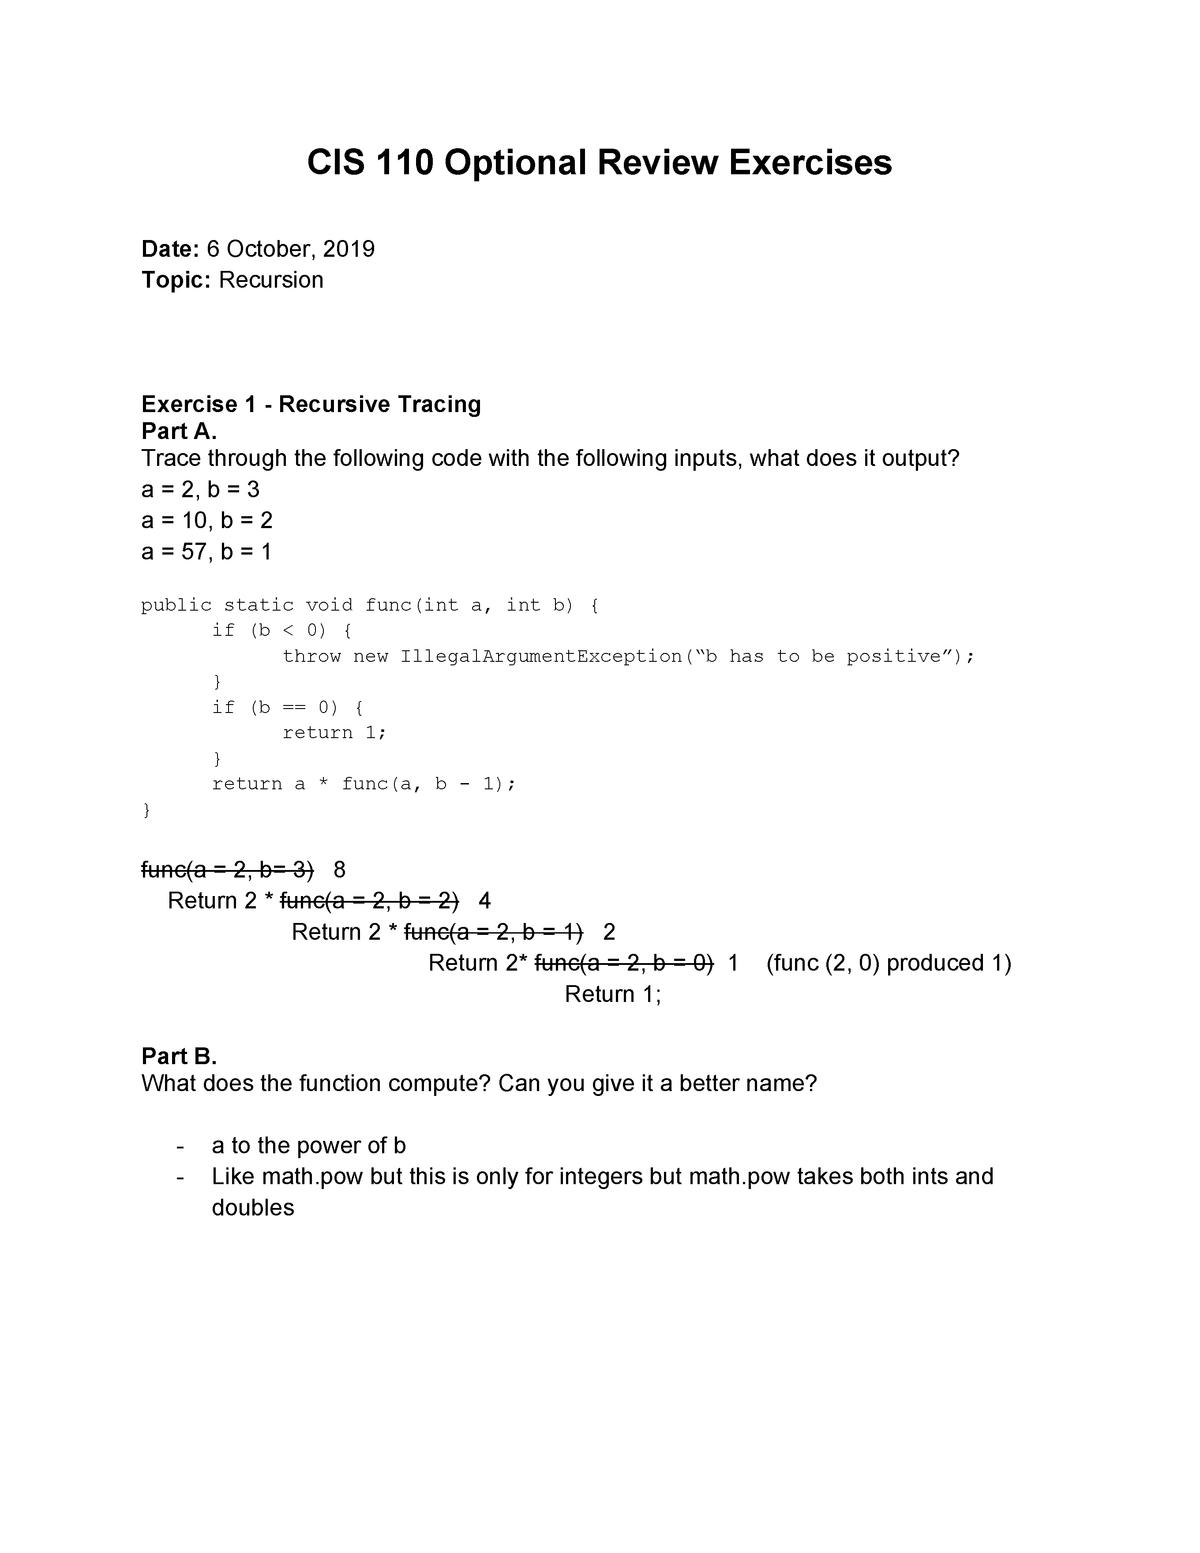 Recursion Worksheet - Cis 110 - Upenn - Studocu